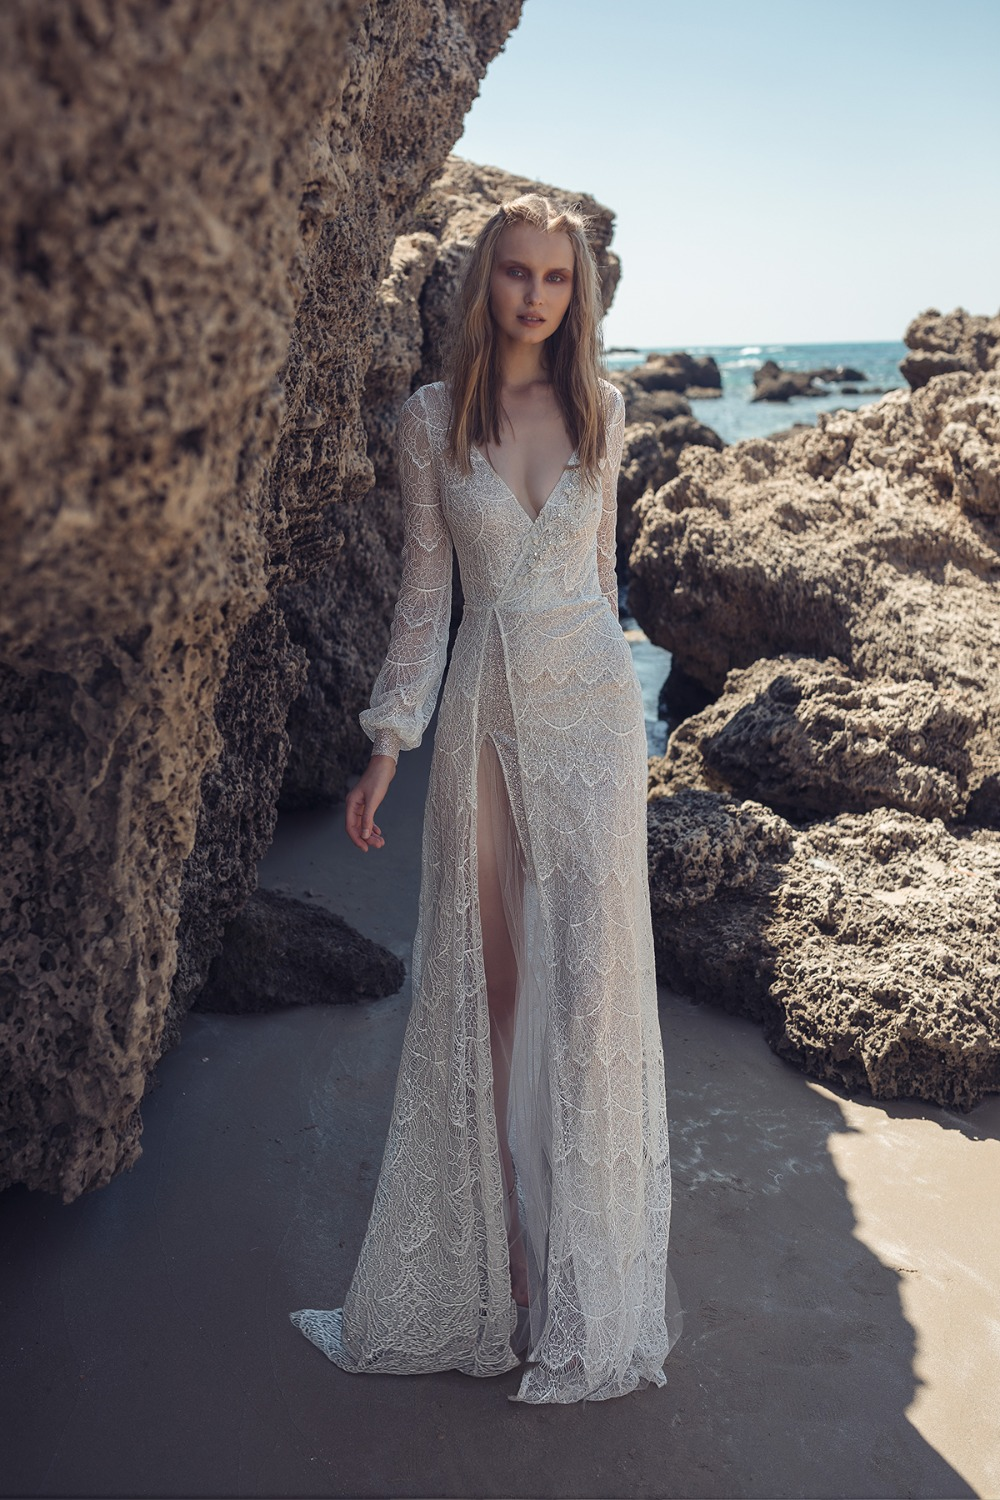 slinky lace and beaded full sleeve gown by Lilium